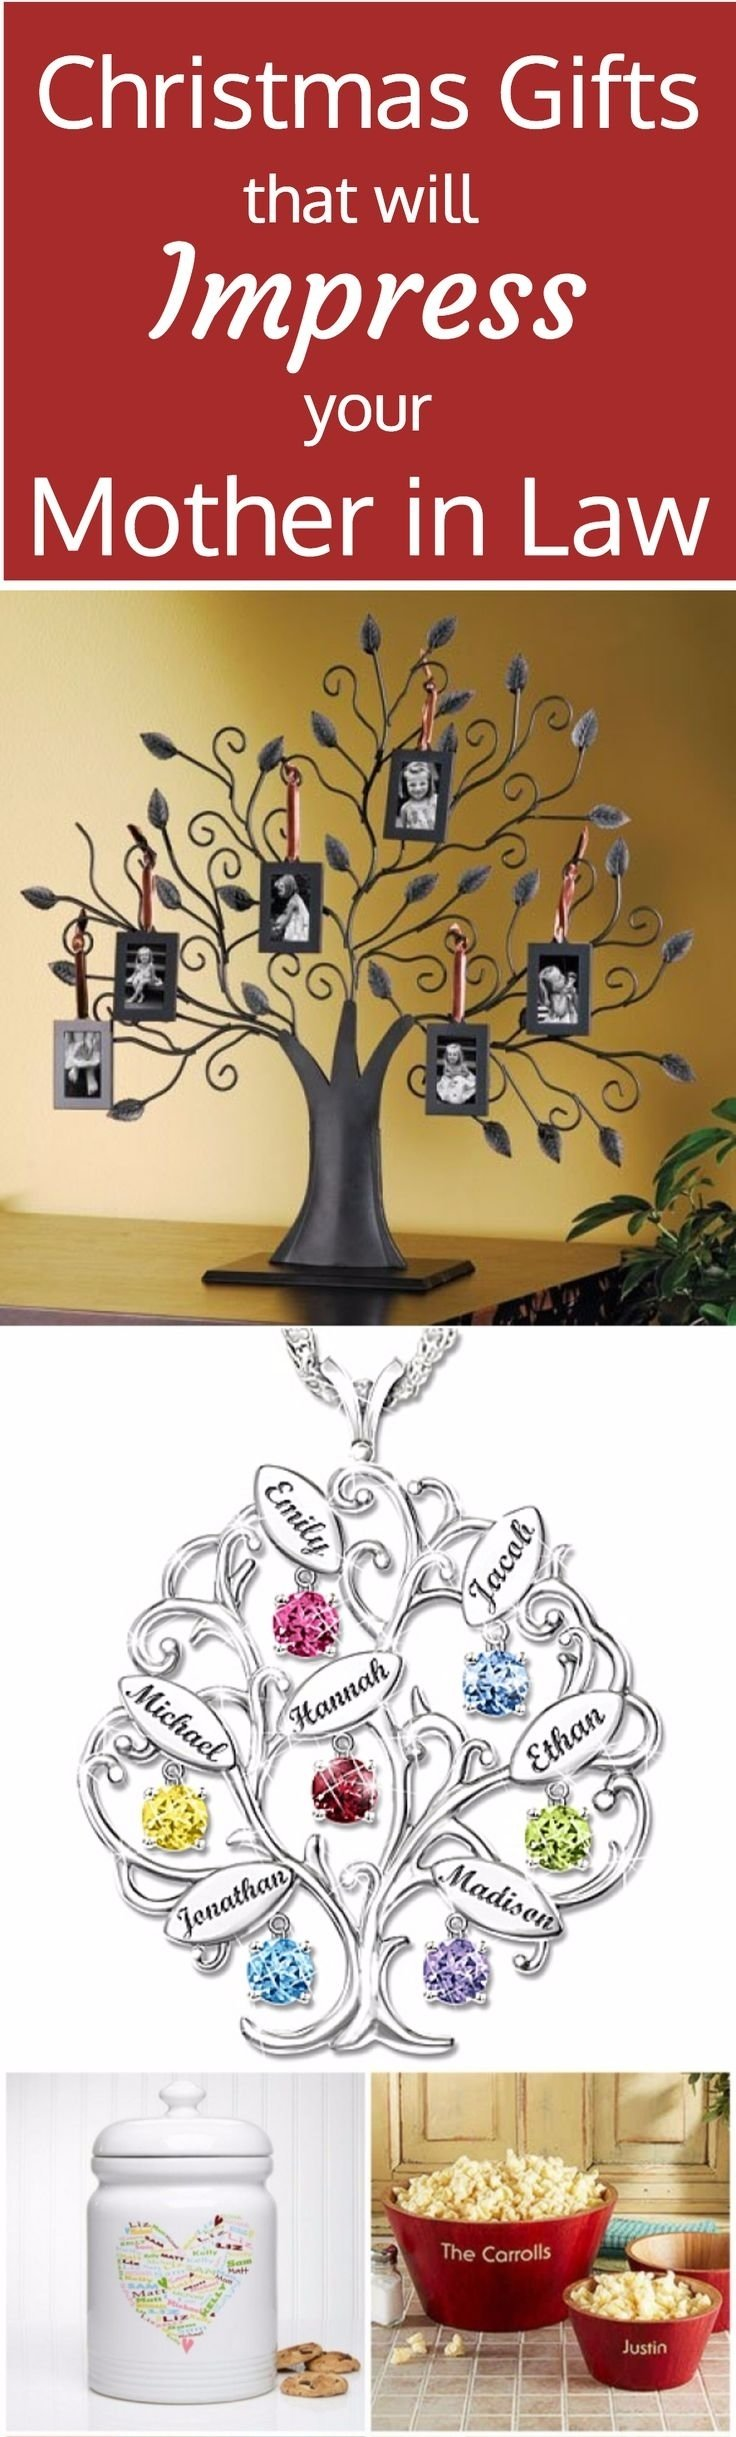 10 Beautiful Gift Ideas For Mother In Law 347 best what to get your mother in law for christmas images on 5 2020